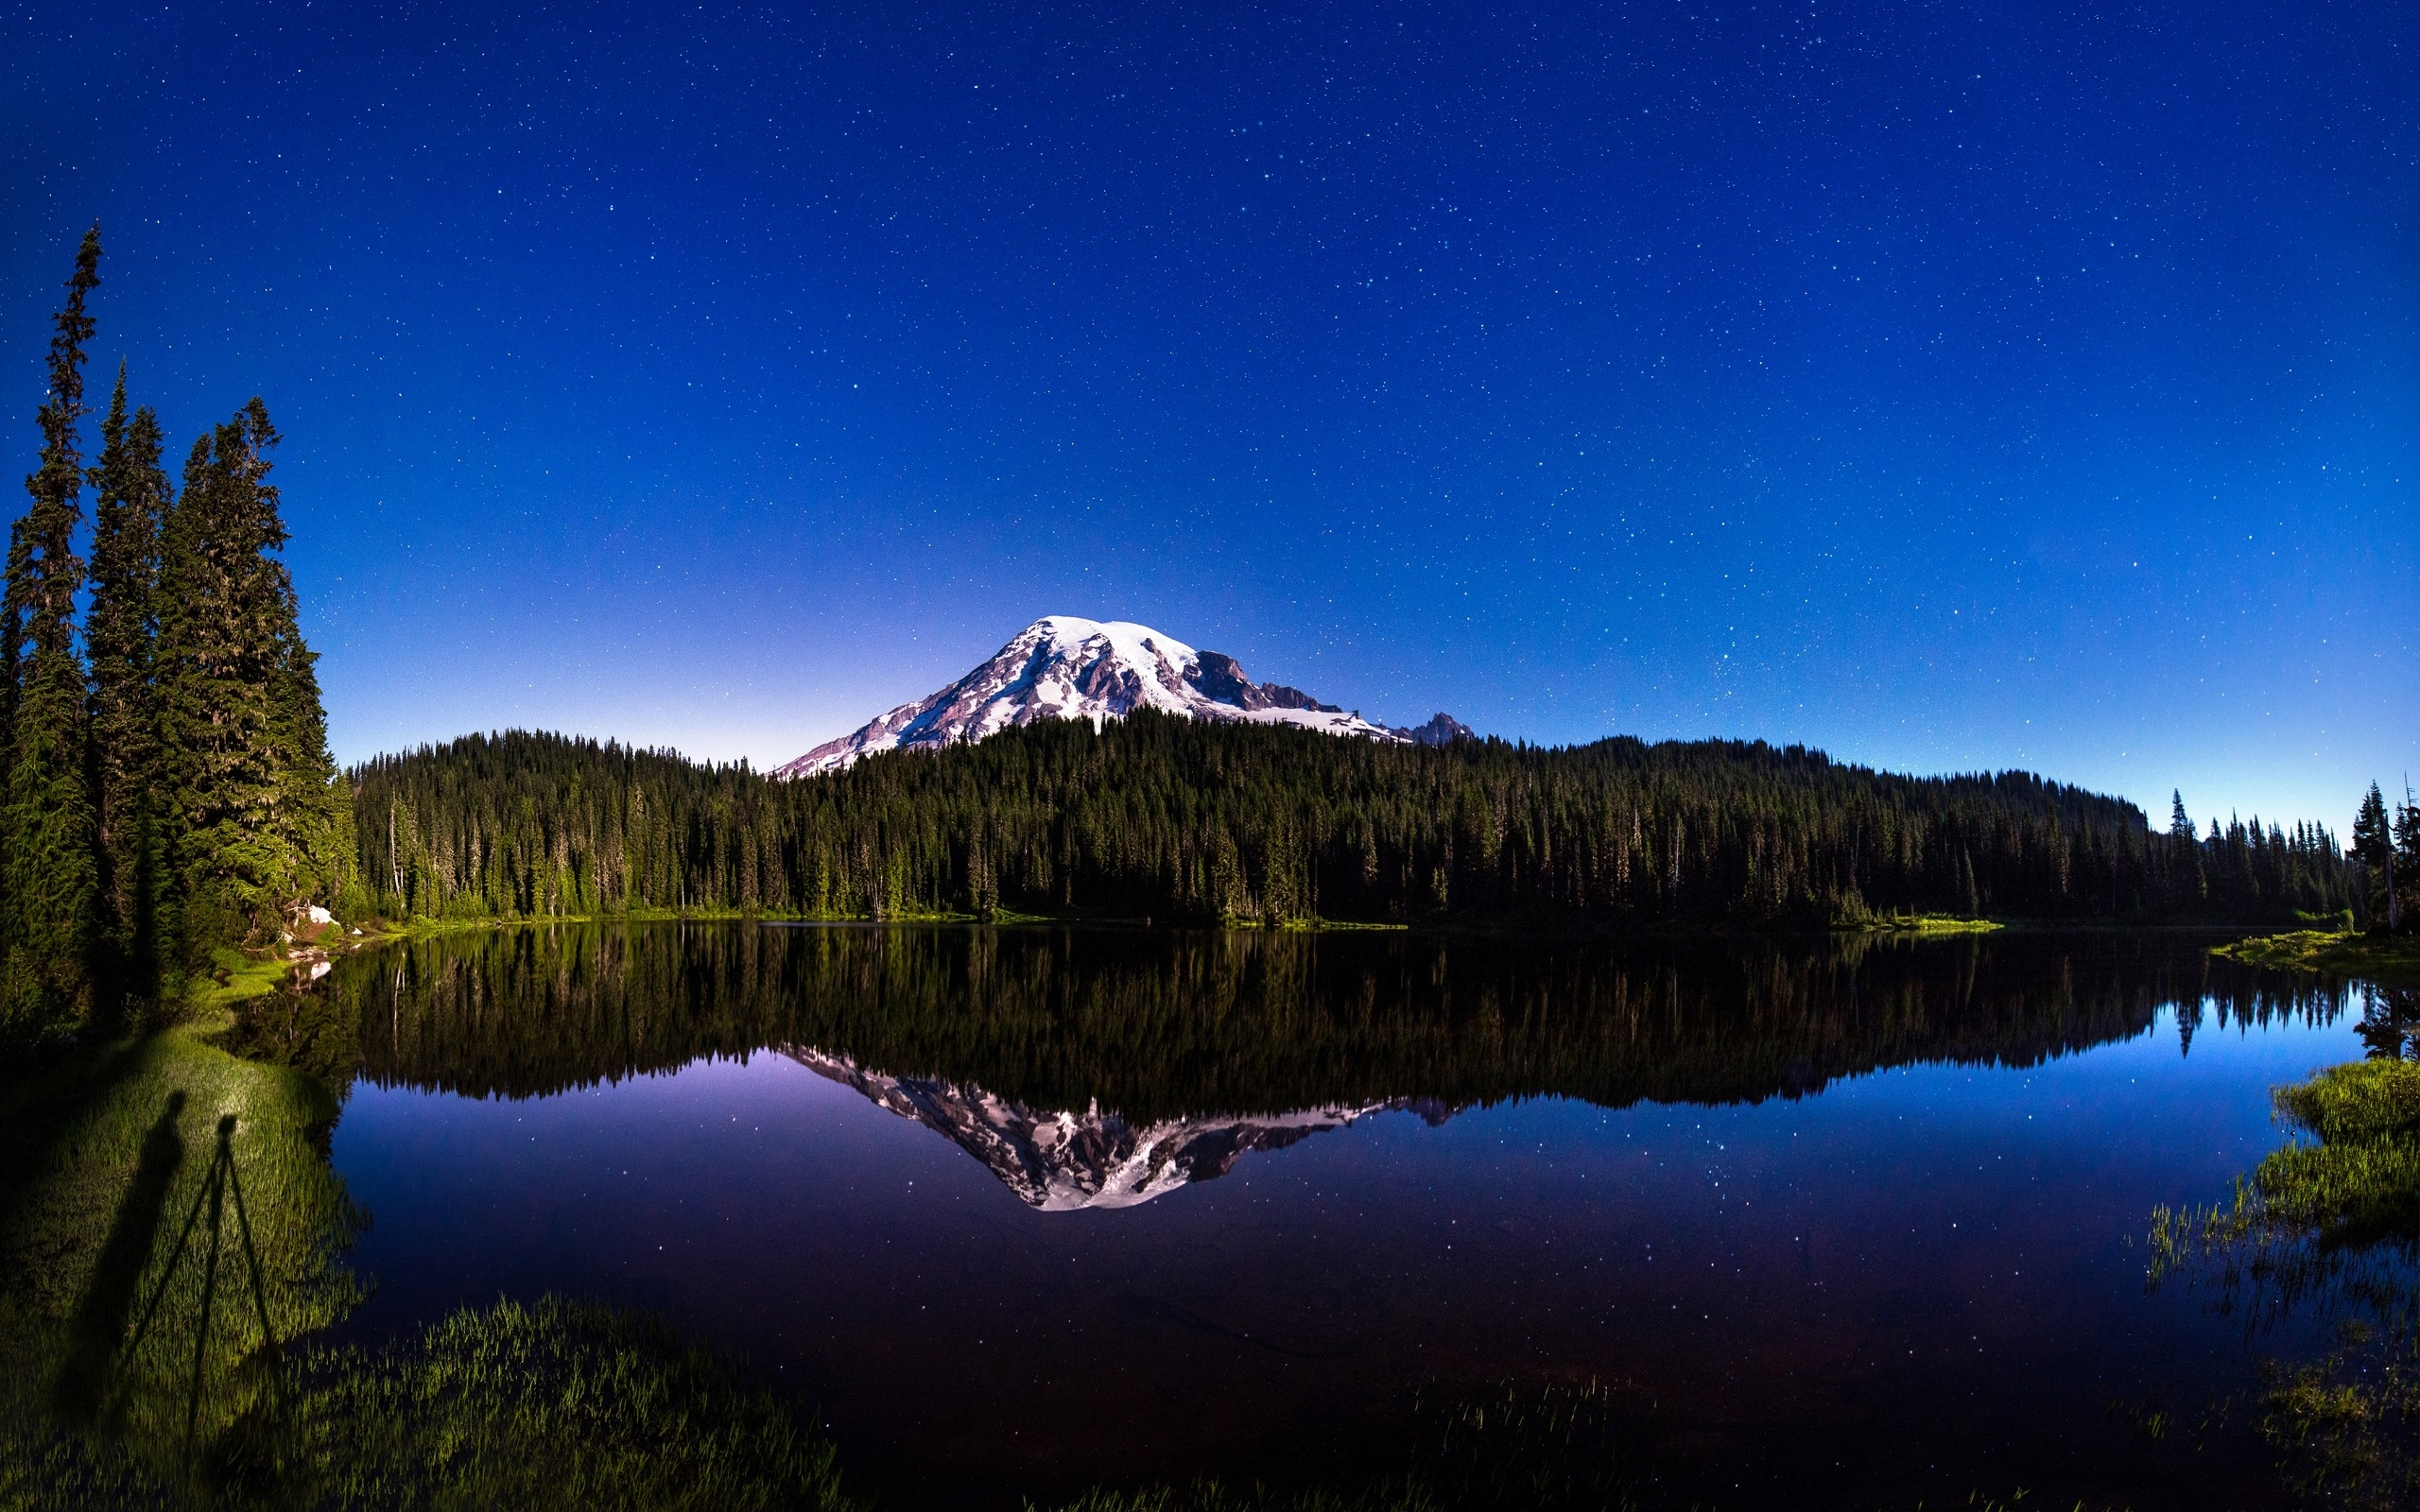 night sky mountain forest lake wallpapers